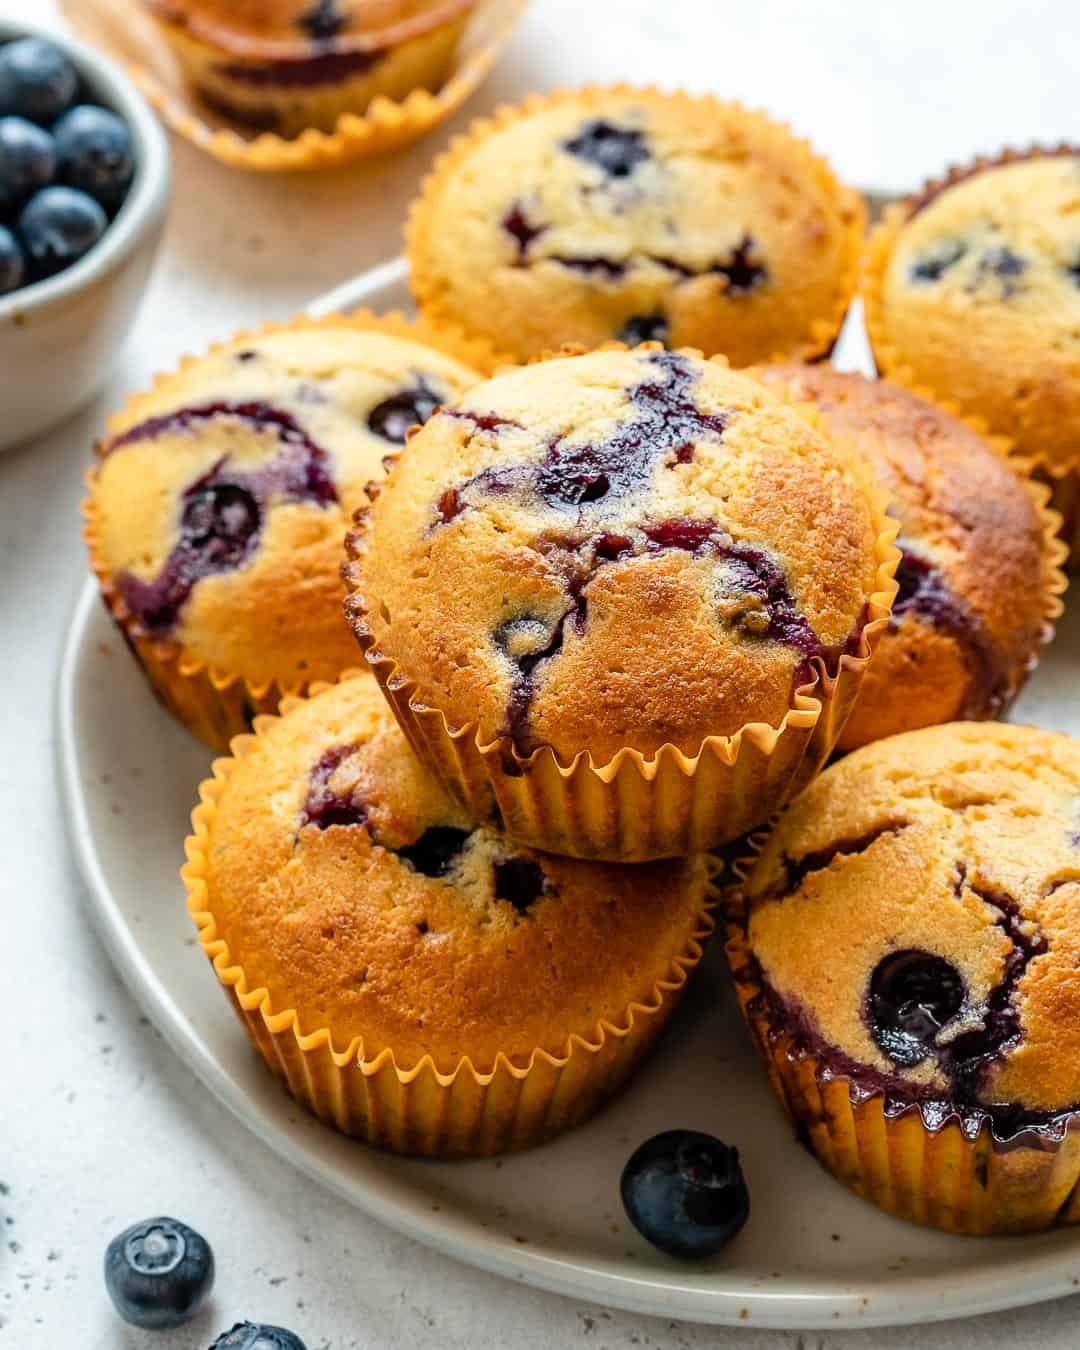 Gluten Free Lemon Blueberry Muffins Healthy Fitness Meals,Modern 5 Bedroom Double Storey House Plans In South Africa